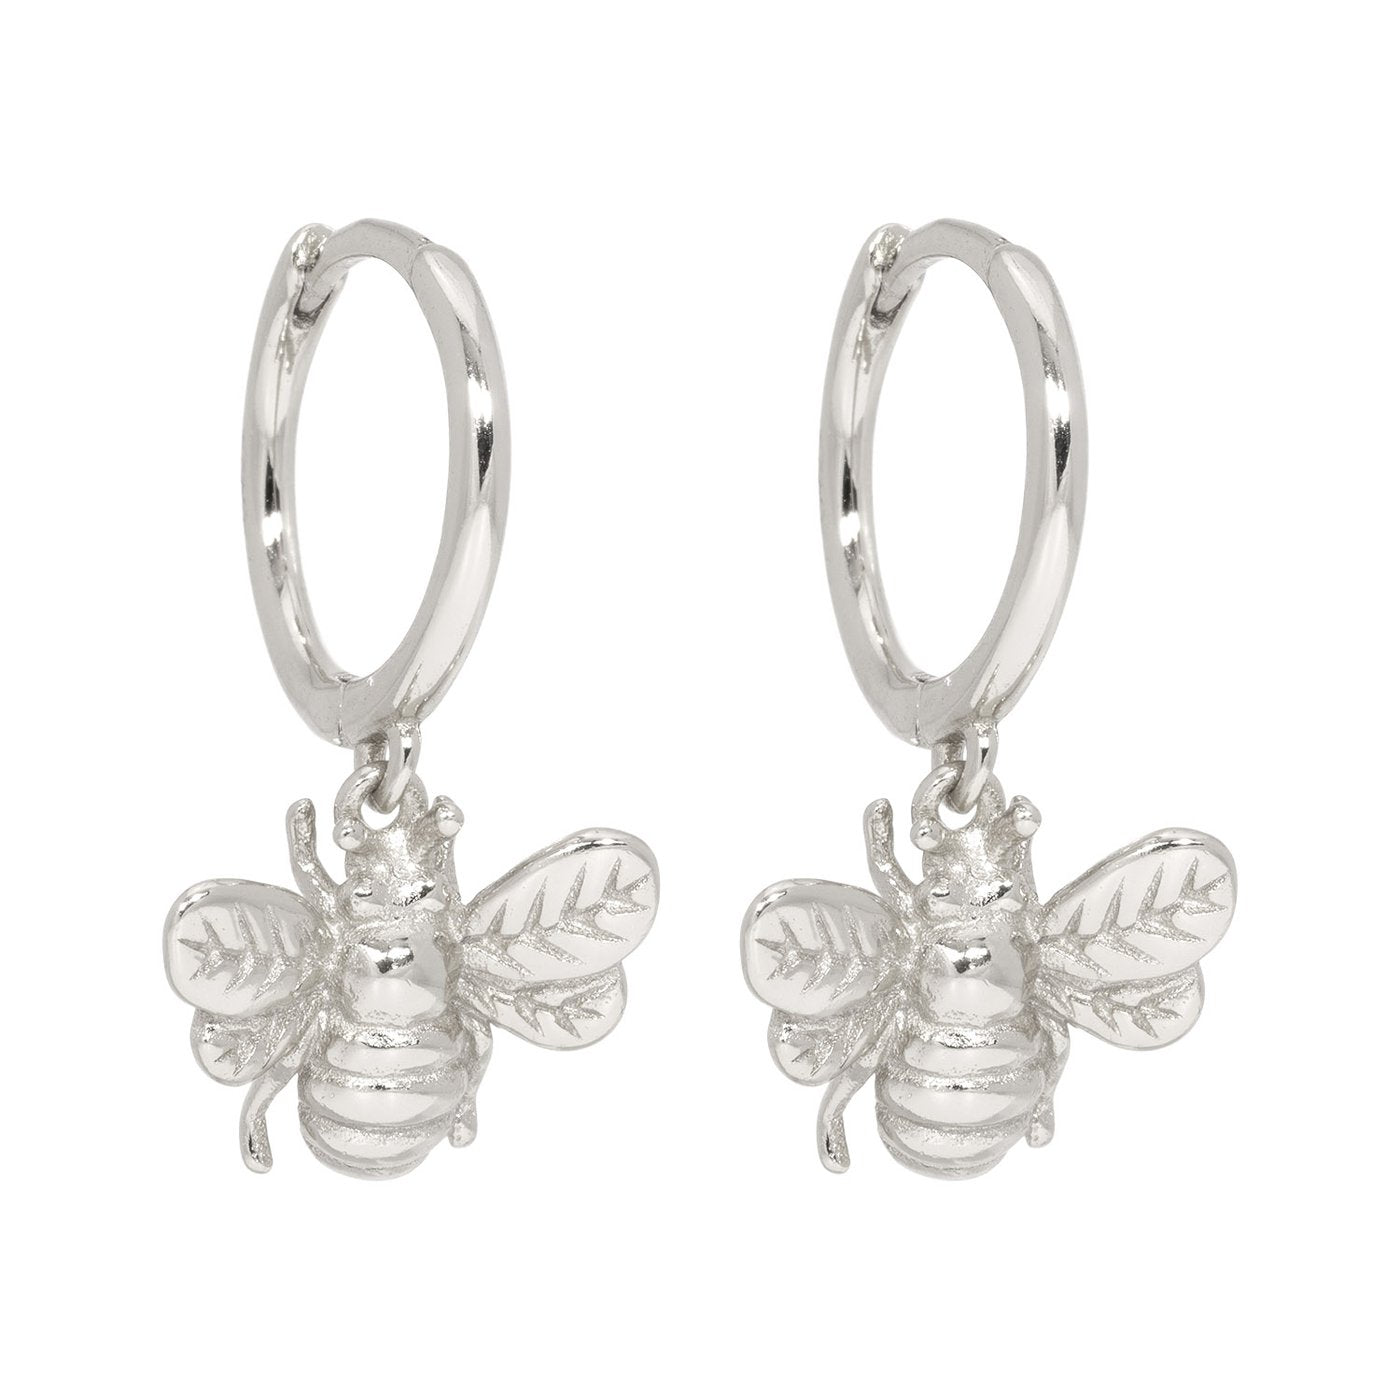 Lillys Amsterdam Silver Bee Huggie Earrings